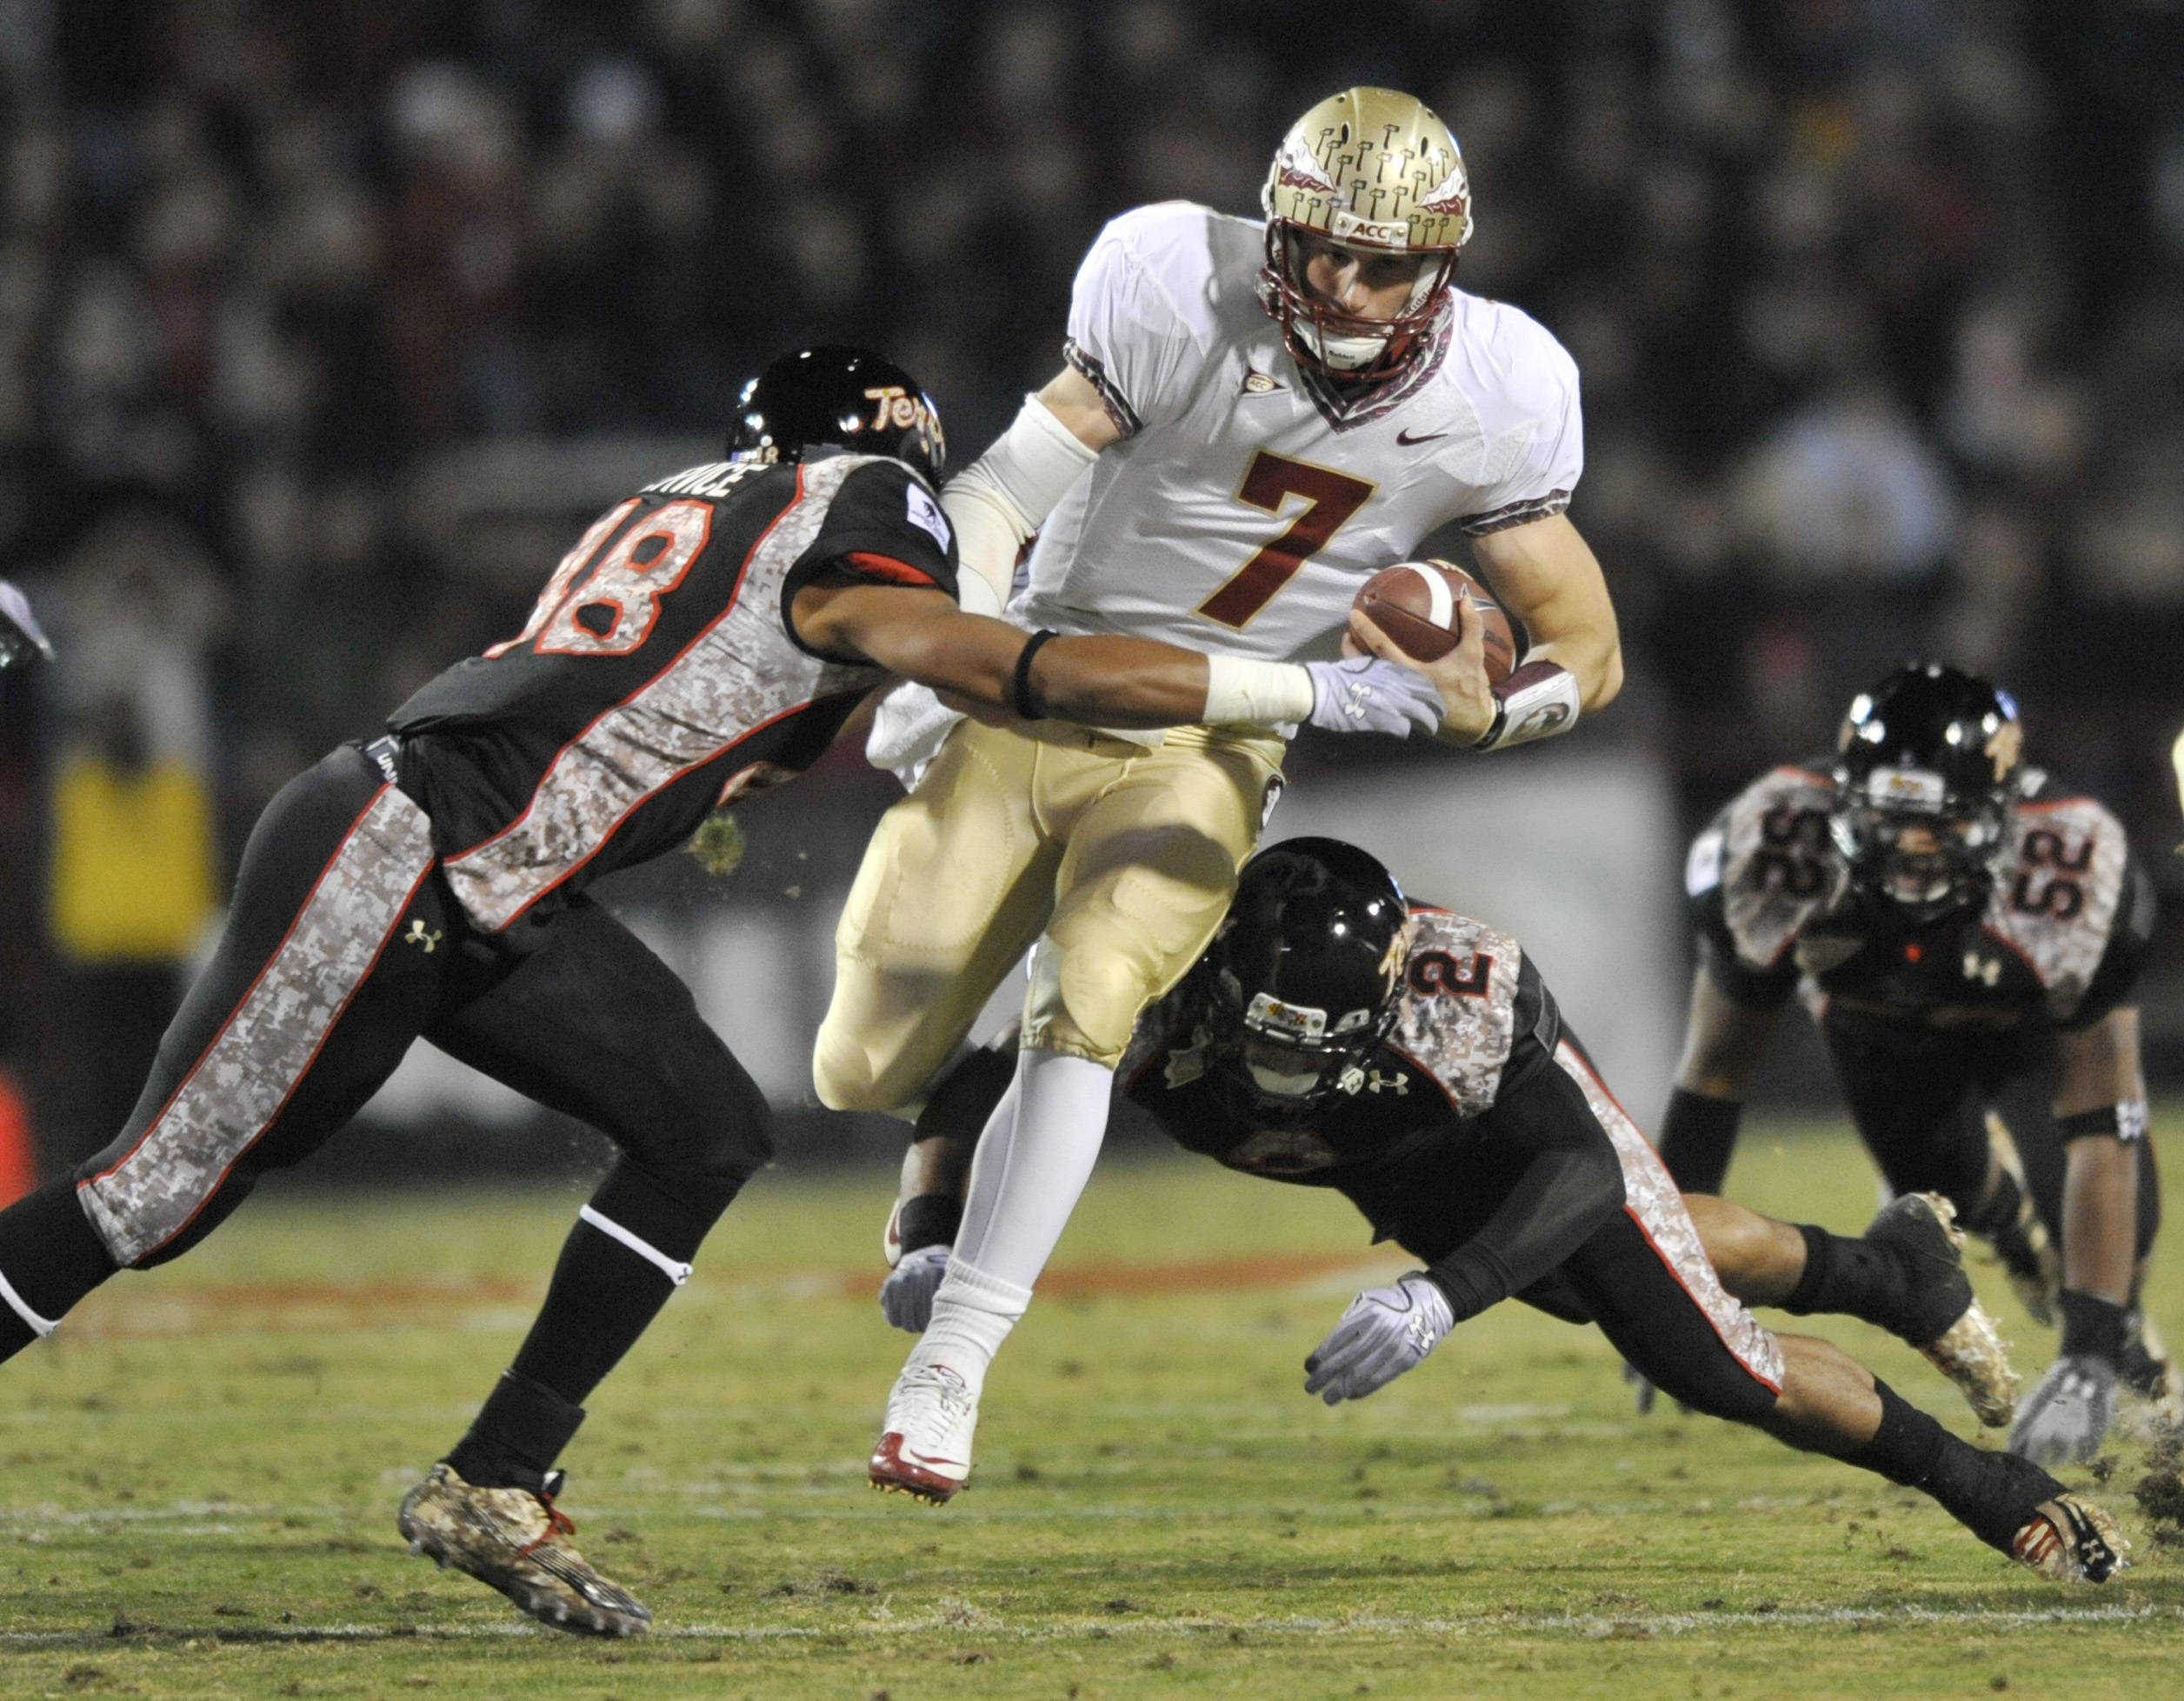 Maryland's Eric Franklin, left, and Antwine Perez tackle Florida State's quarterback Christian Ponder during the first half. (AP Photo/Gail Burton)